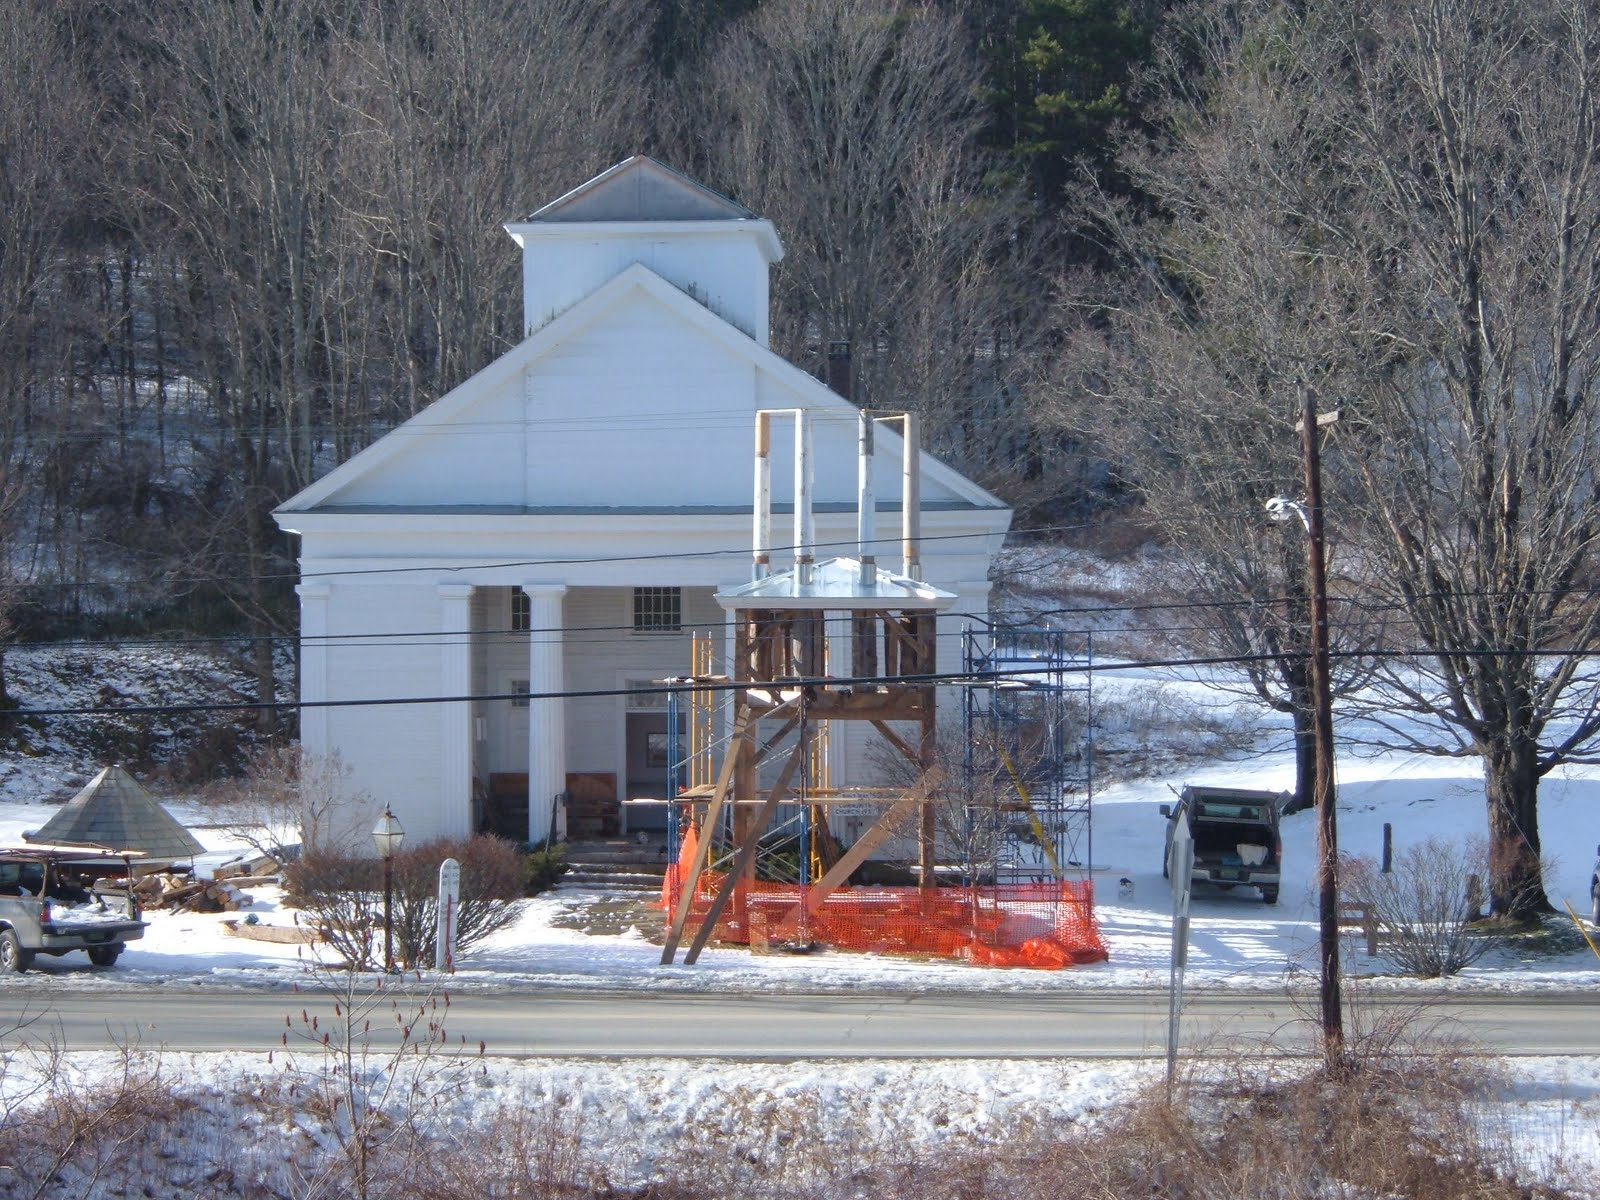 A temporary roof was placed on the lower tower while repairs were done.